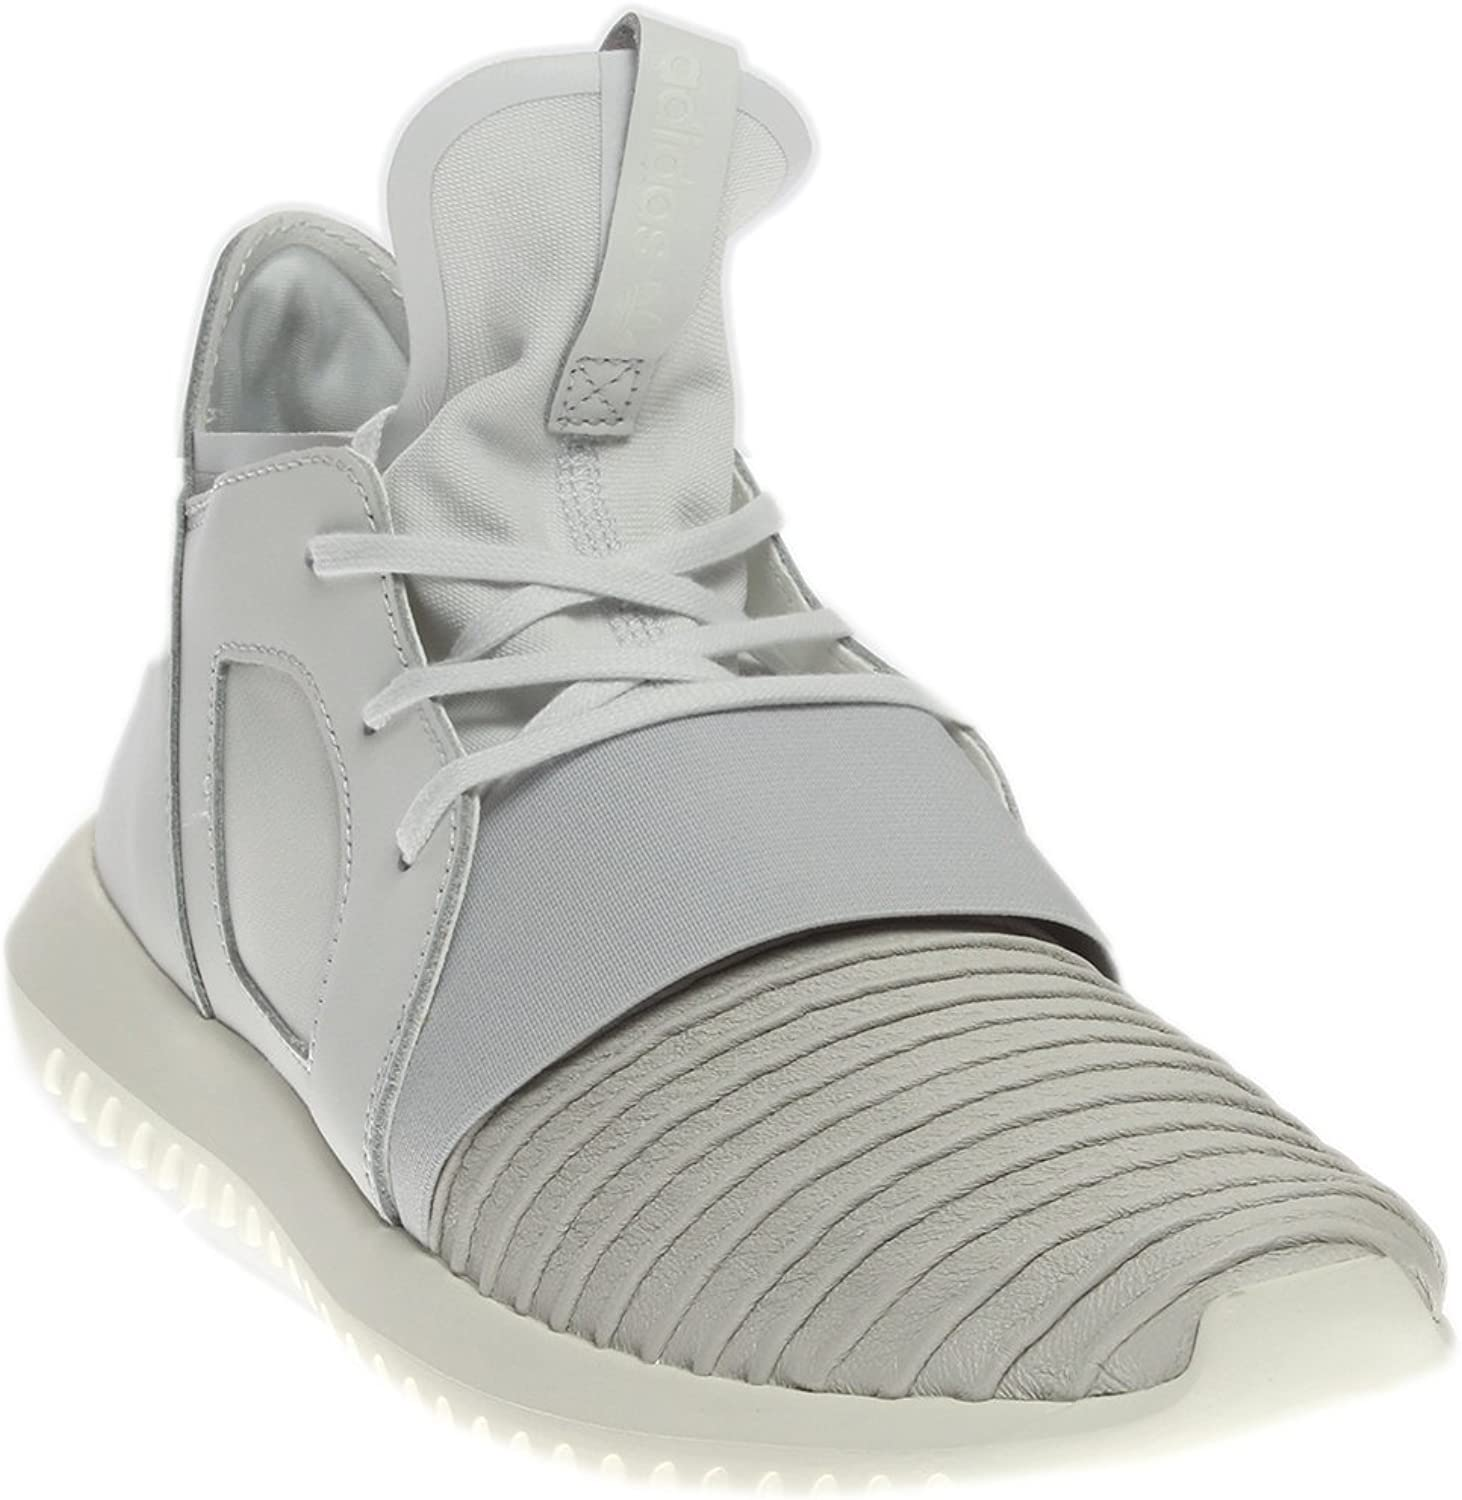 Adidas Women's Tubular Defiant Ankle-High Fashion Sneaker